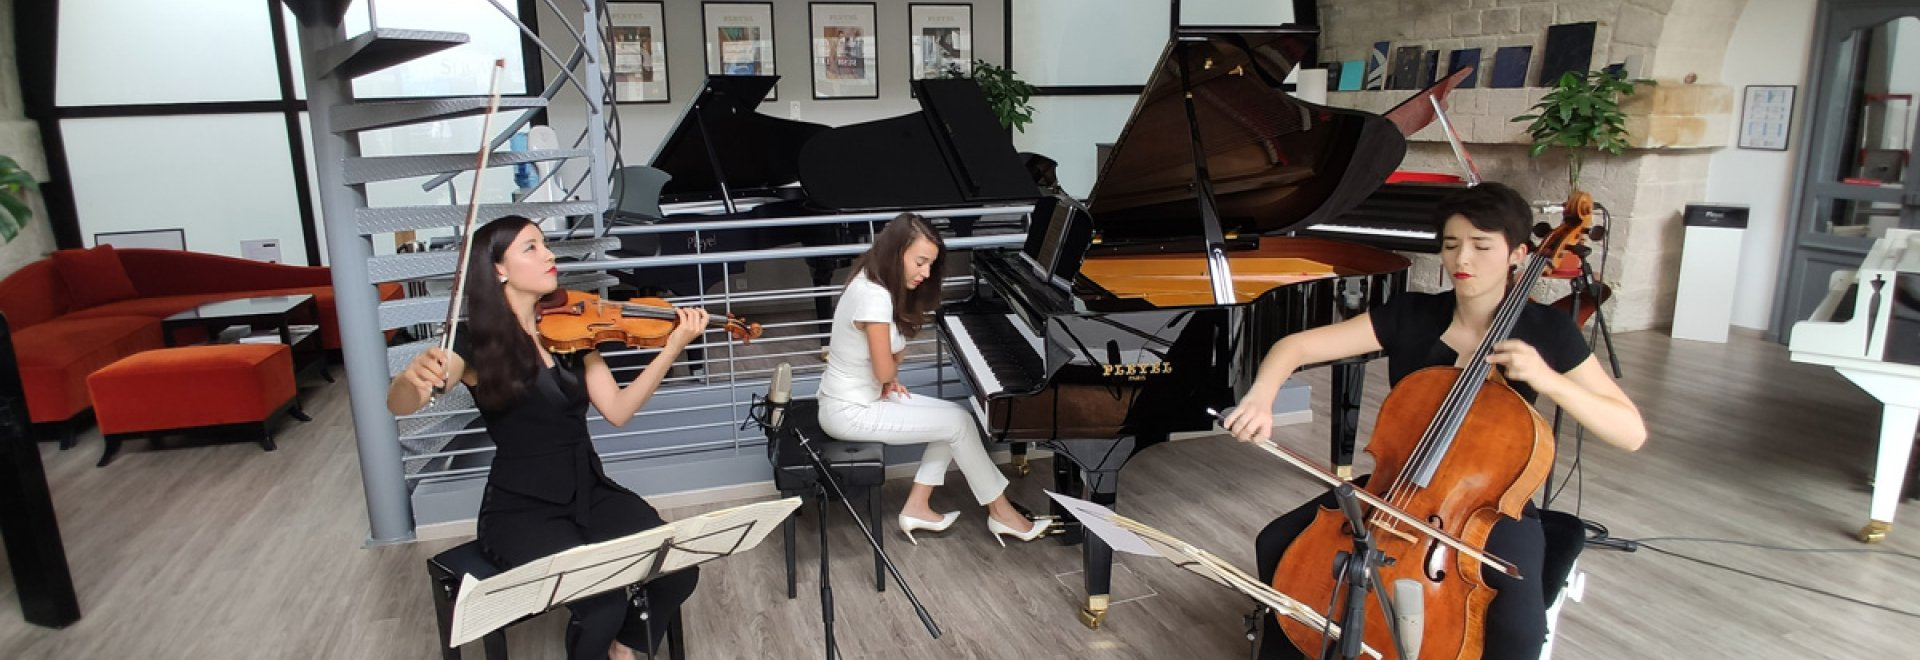 Trio Sōra au showroom Pleyel